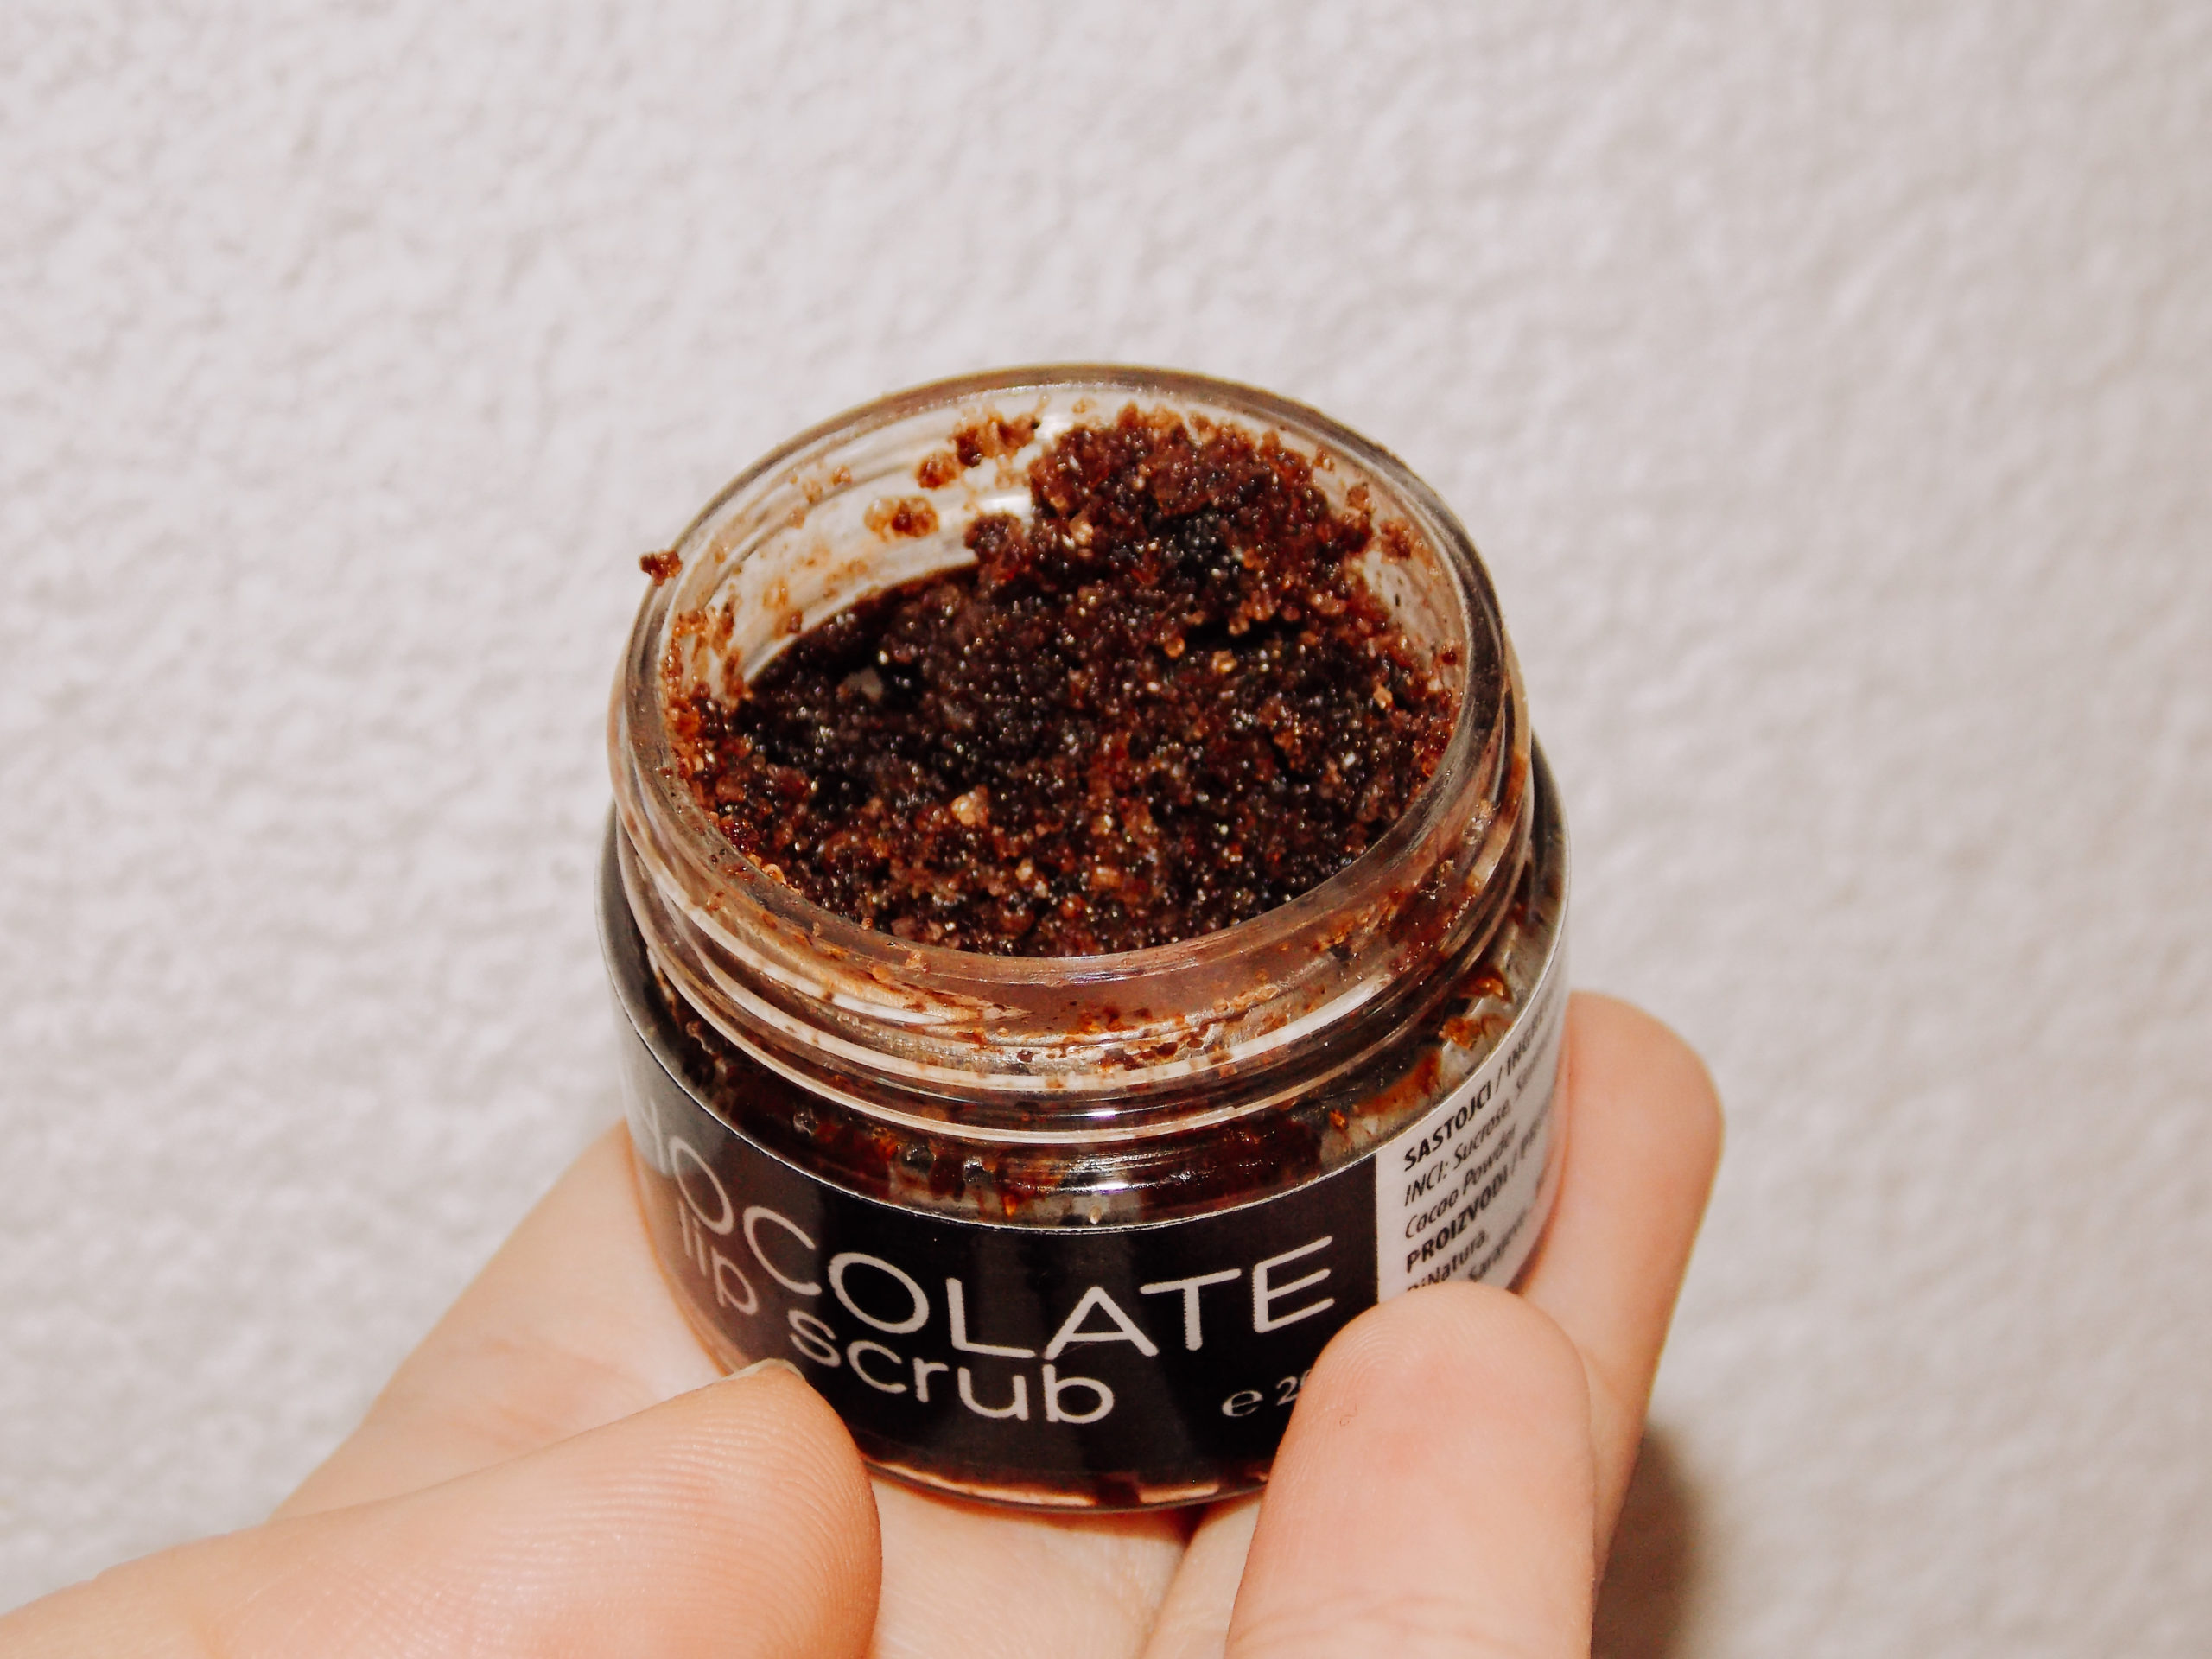 dinatura chocolate lip scrub recenzija review livinglikev fashion blogger